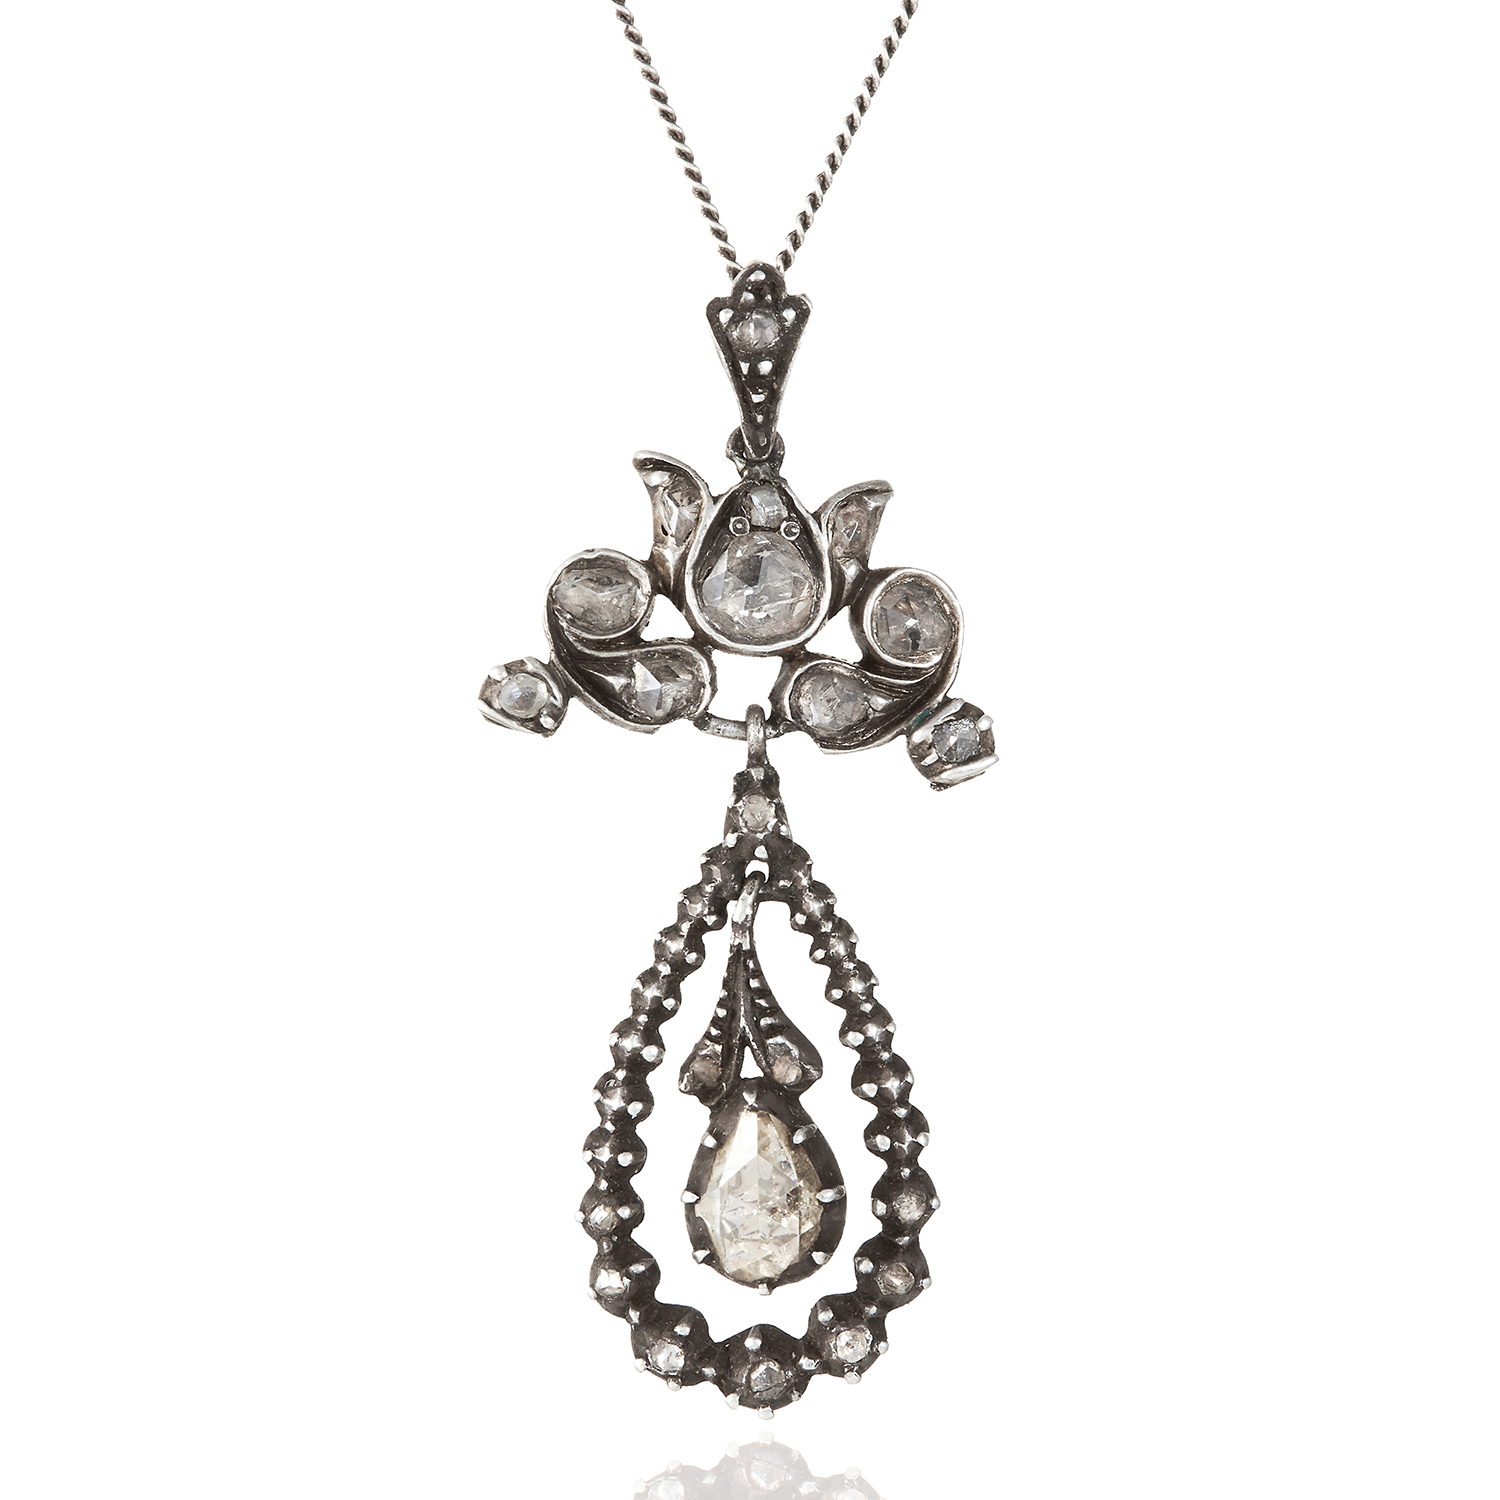 Los 335 - AN ANTIQUE DIAMOND PENDANT, DUTCH 19TH CENTURY in gold and silver, jewelled with rose cut